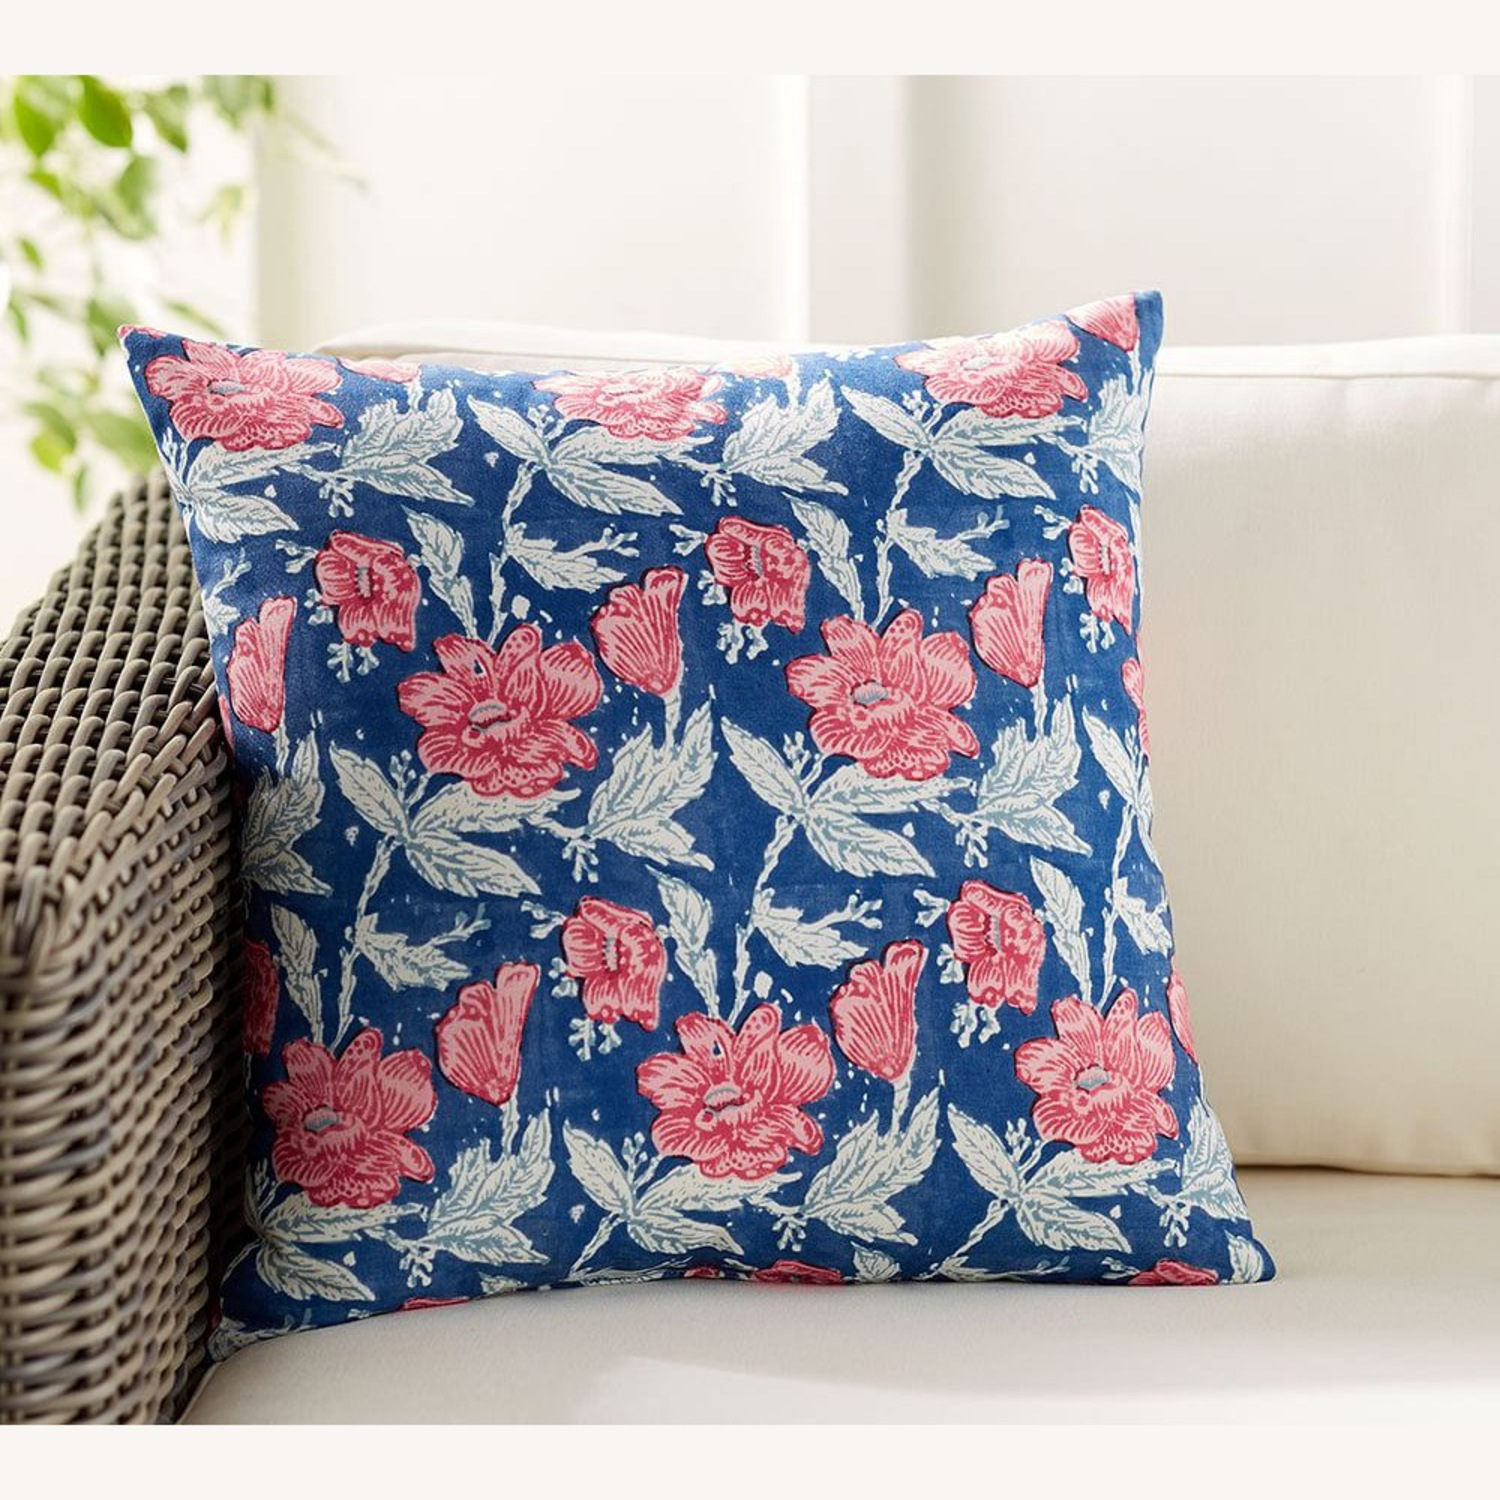 Pottery Barn Indoor/Outdoor Pillow - Set of 8 - image-1